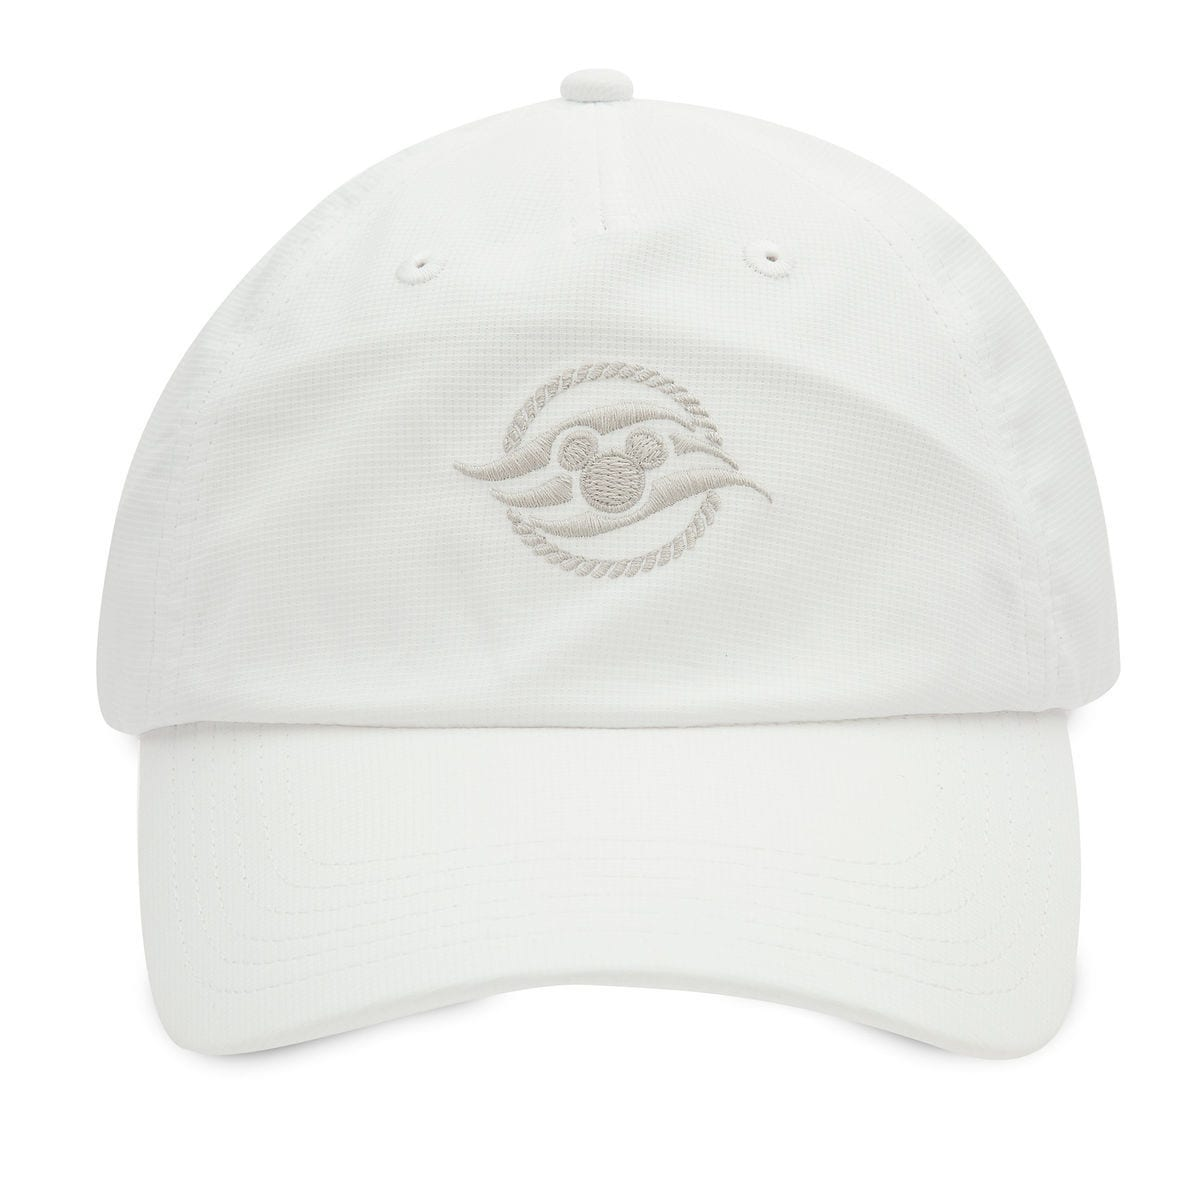 Product Image of Disney Cruise Line Baseball Hat for Adults - White   1 a1abfa4562a